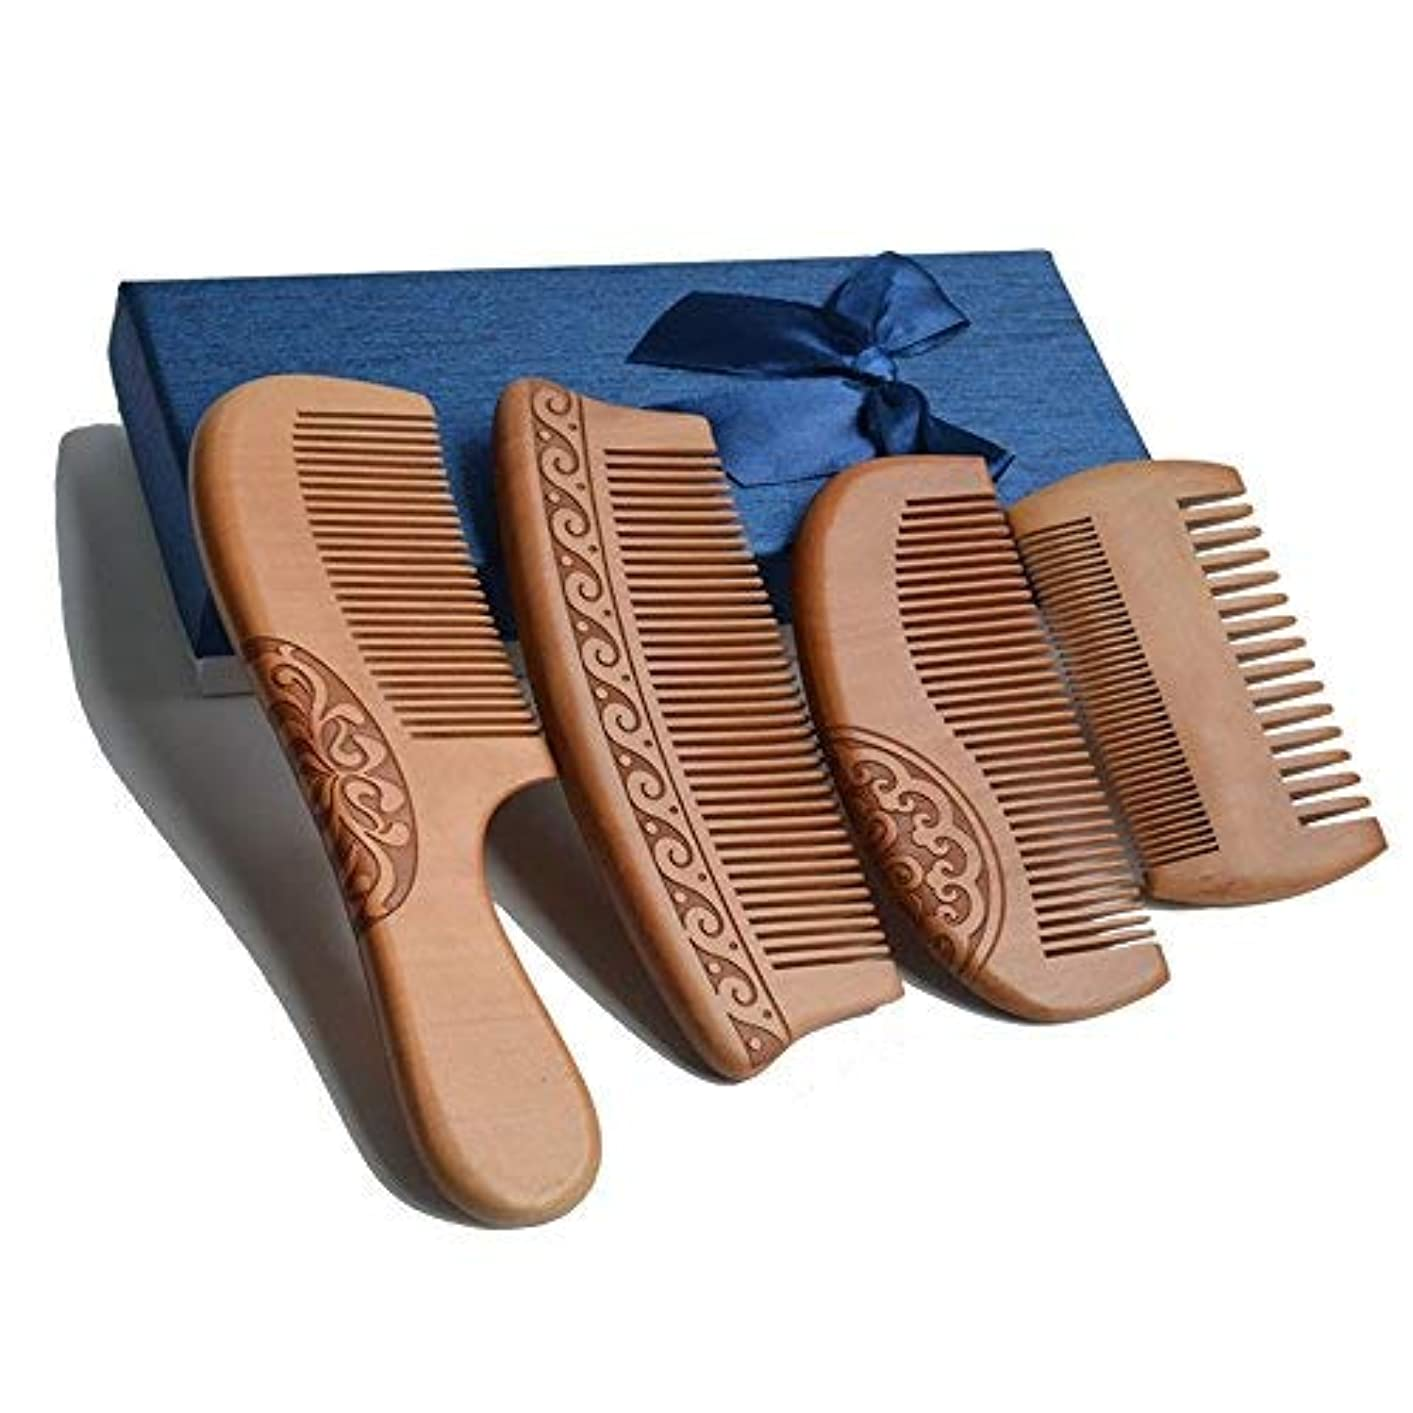 賞賛特徴不一致4Pcs Wooden Hair Comb No Static Hair Detangler Detangling Comb with Premium Gift Box [並行輸入品]